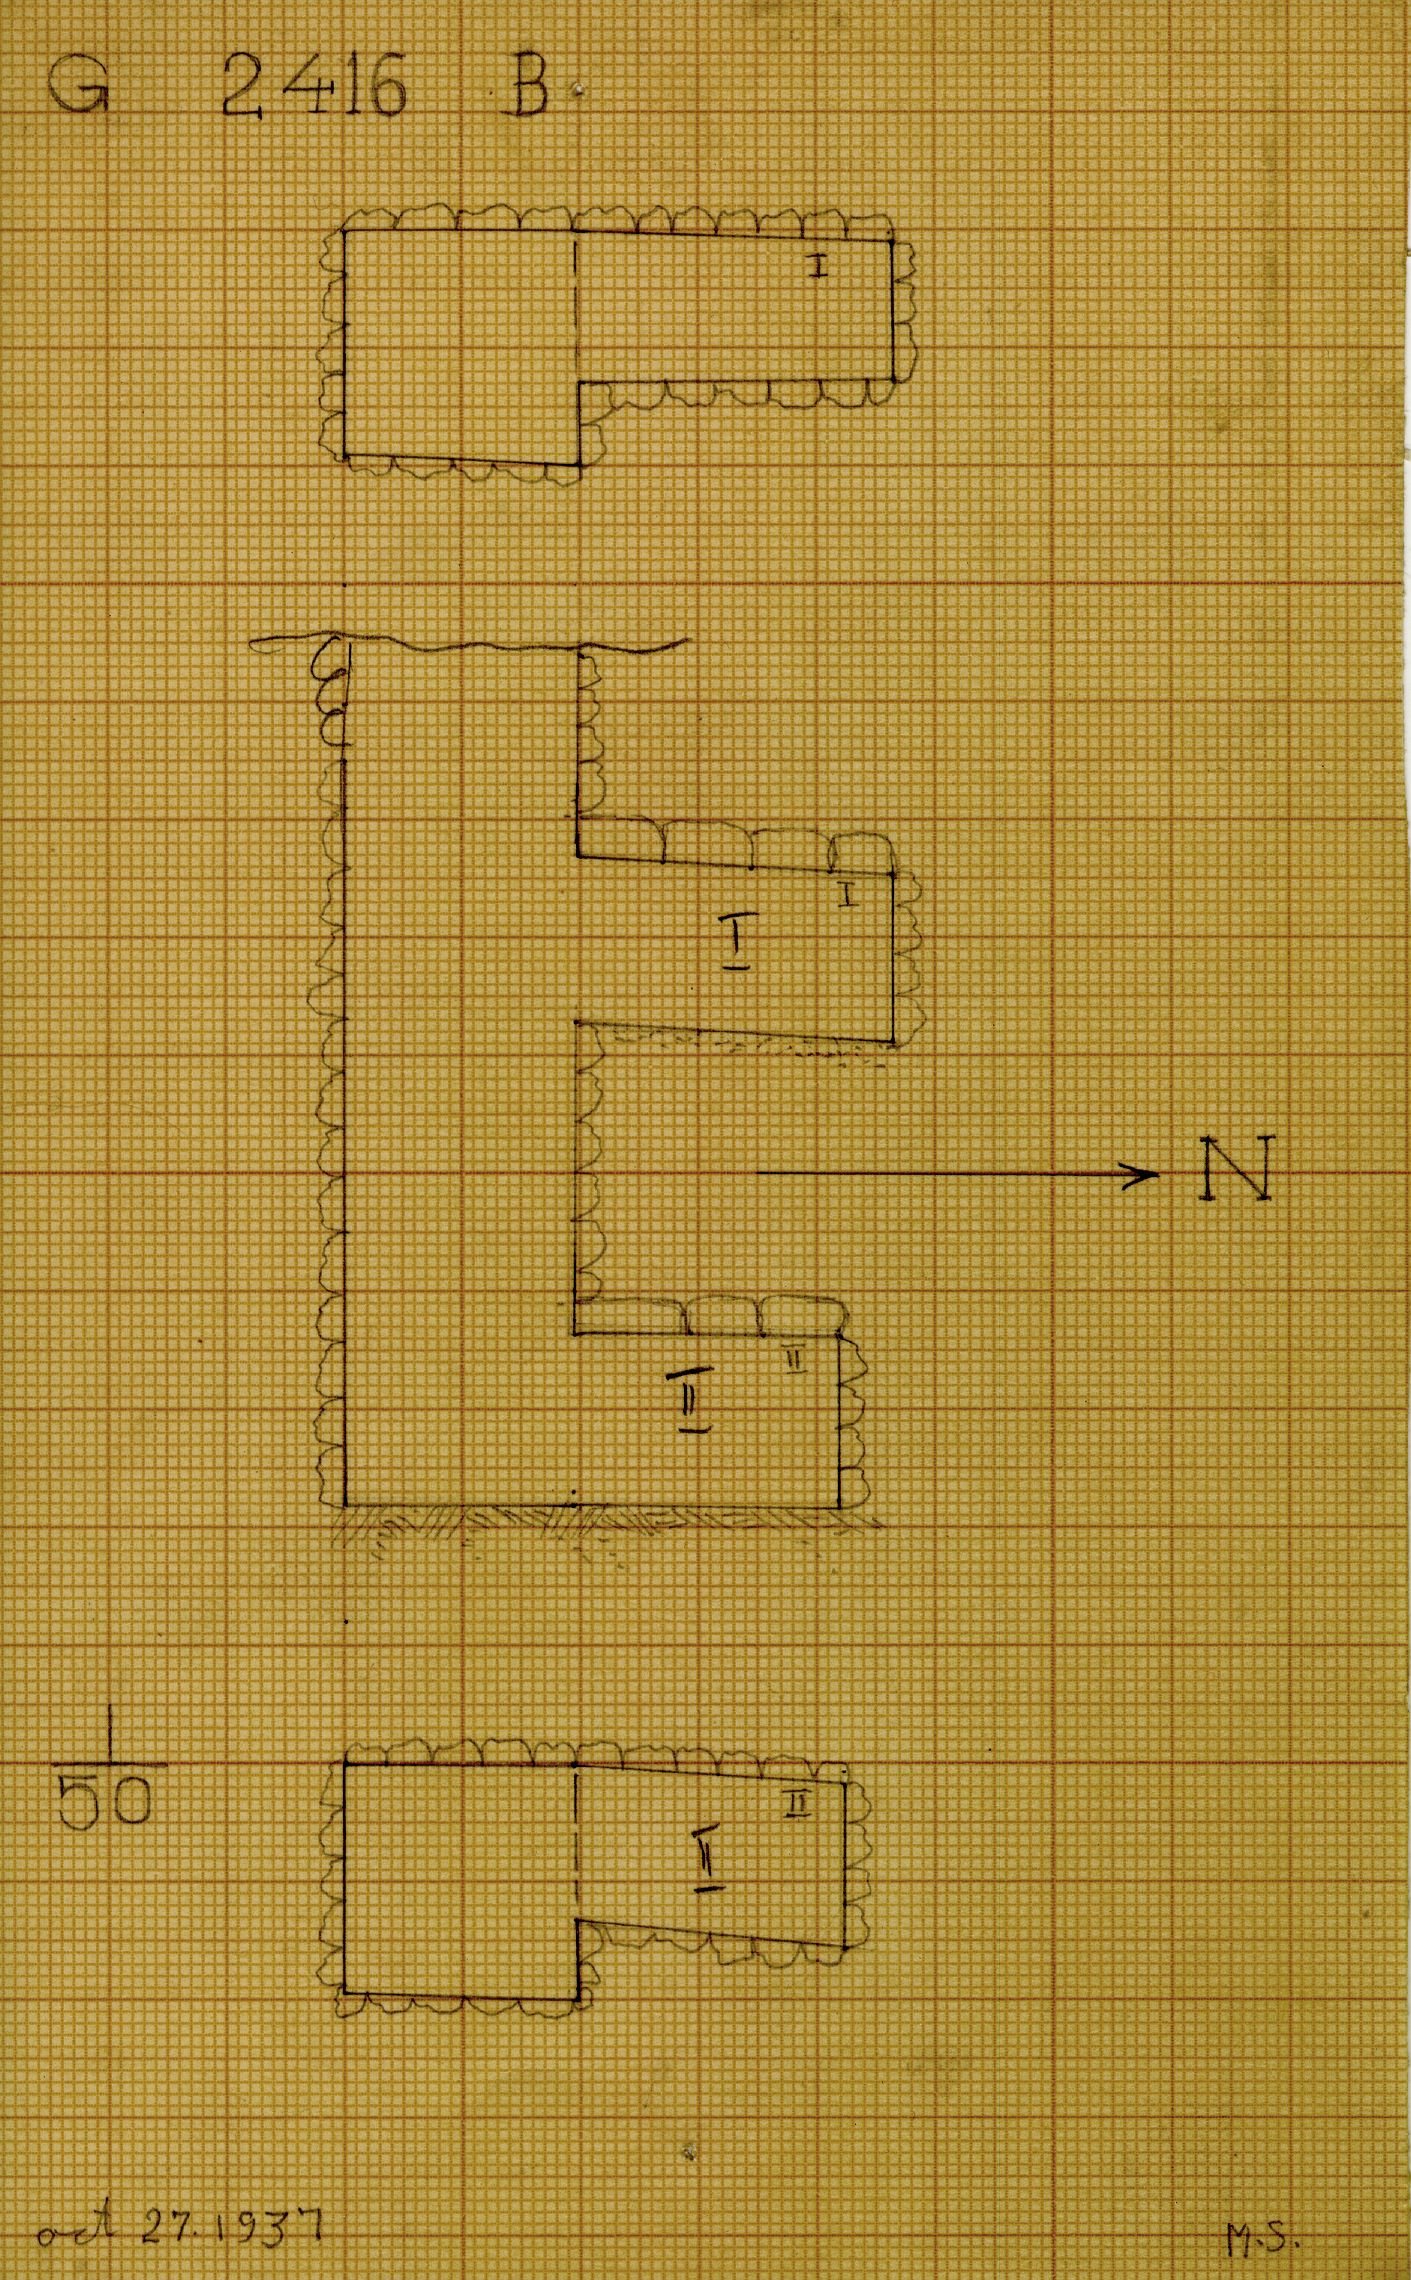 Maps and plans: G 2416, Shaft B